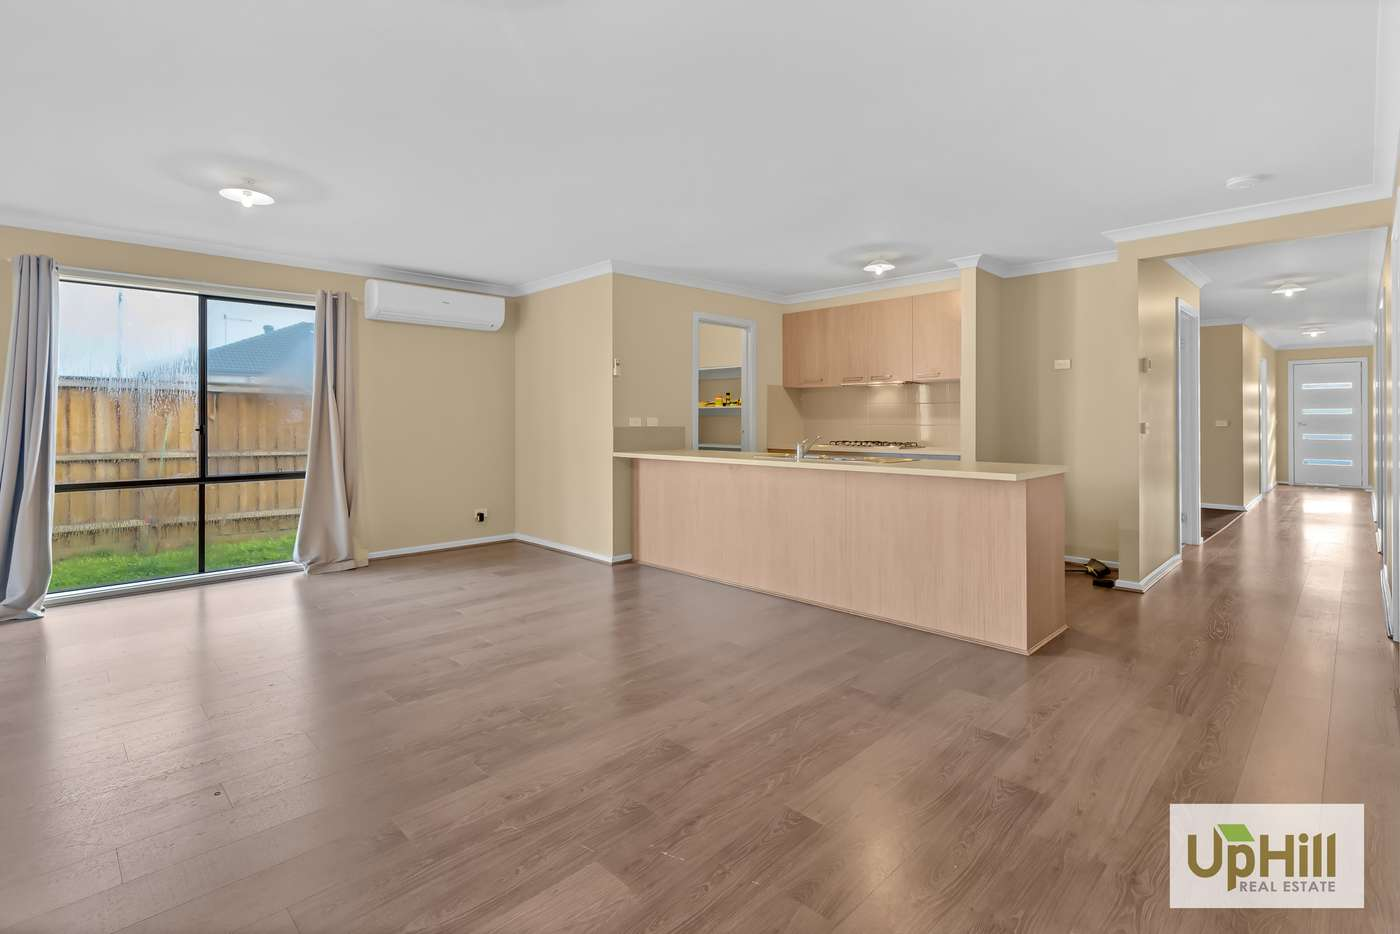 Seventh view of Homely house listing, 10 CARISBROOKE WAY, Clyde North VIC 3978